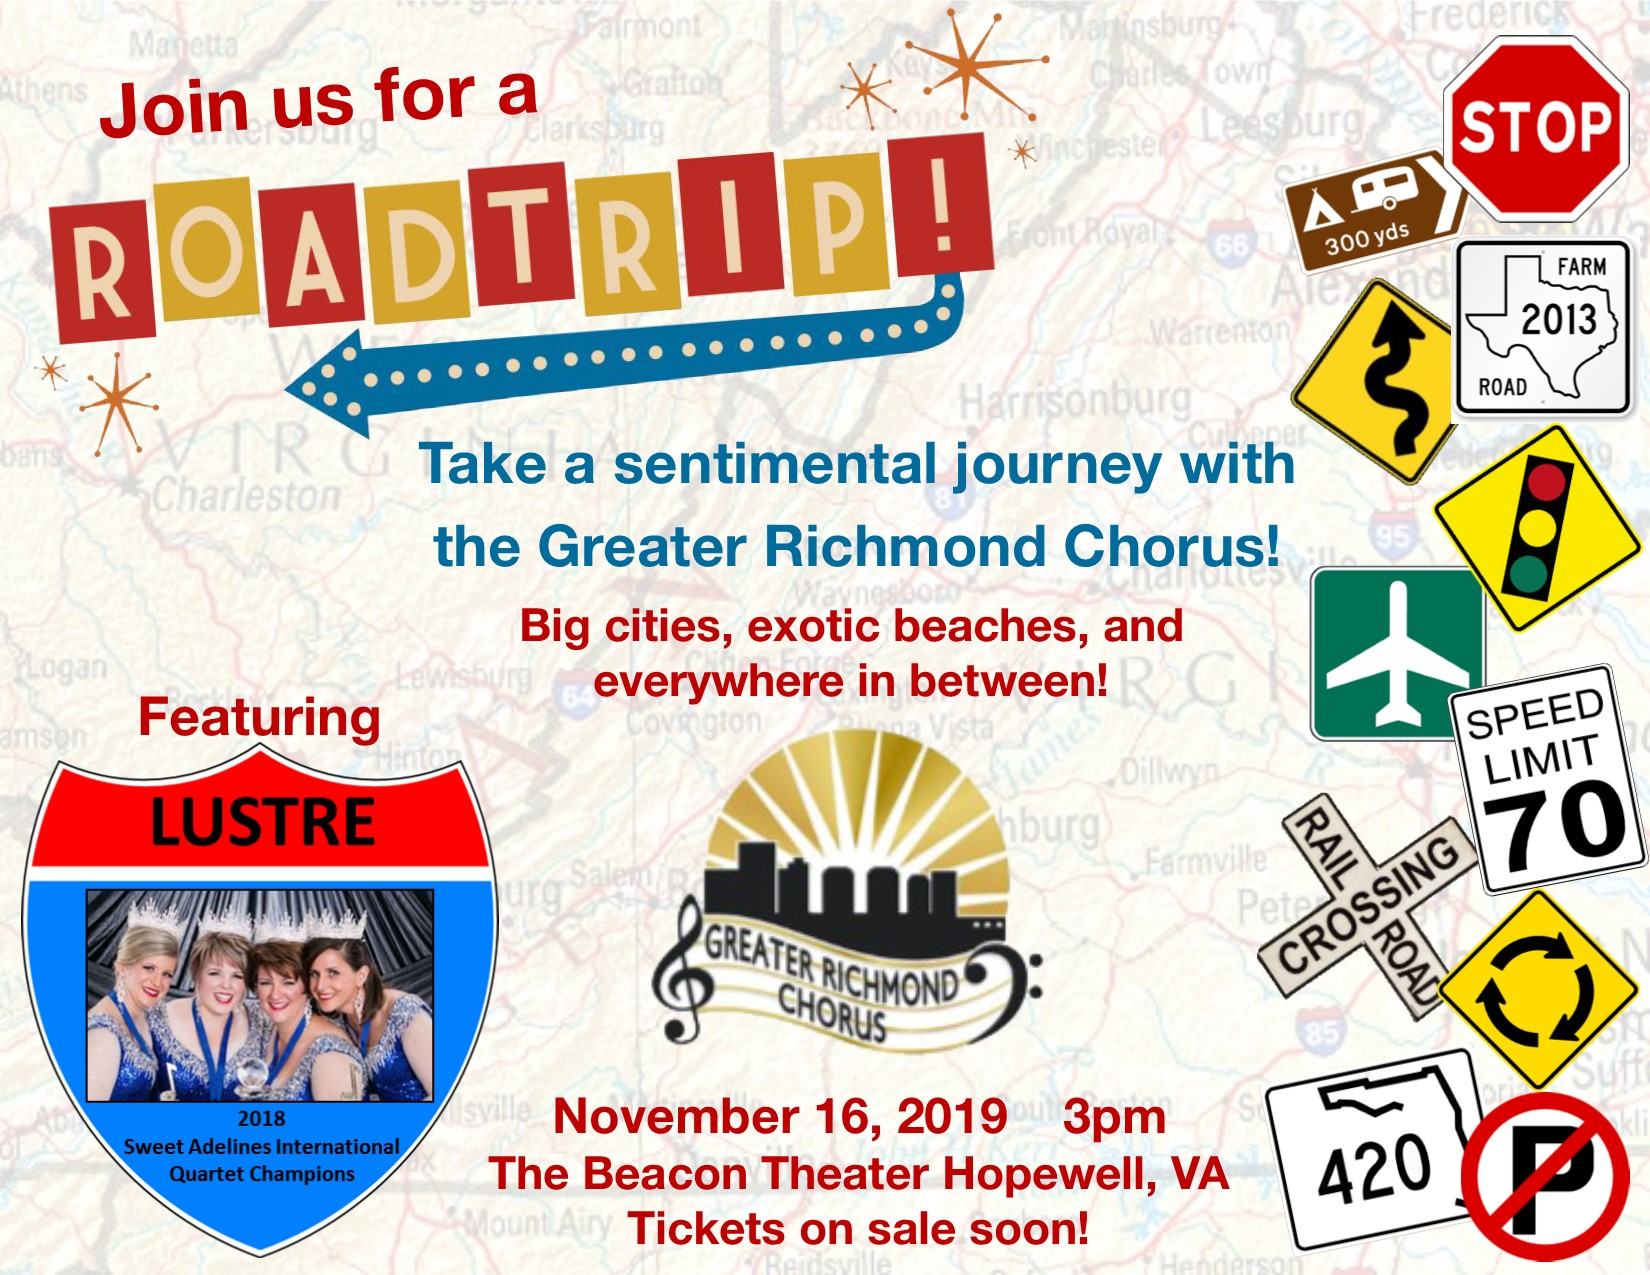 Join us for a Roadtrip!